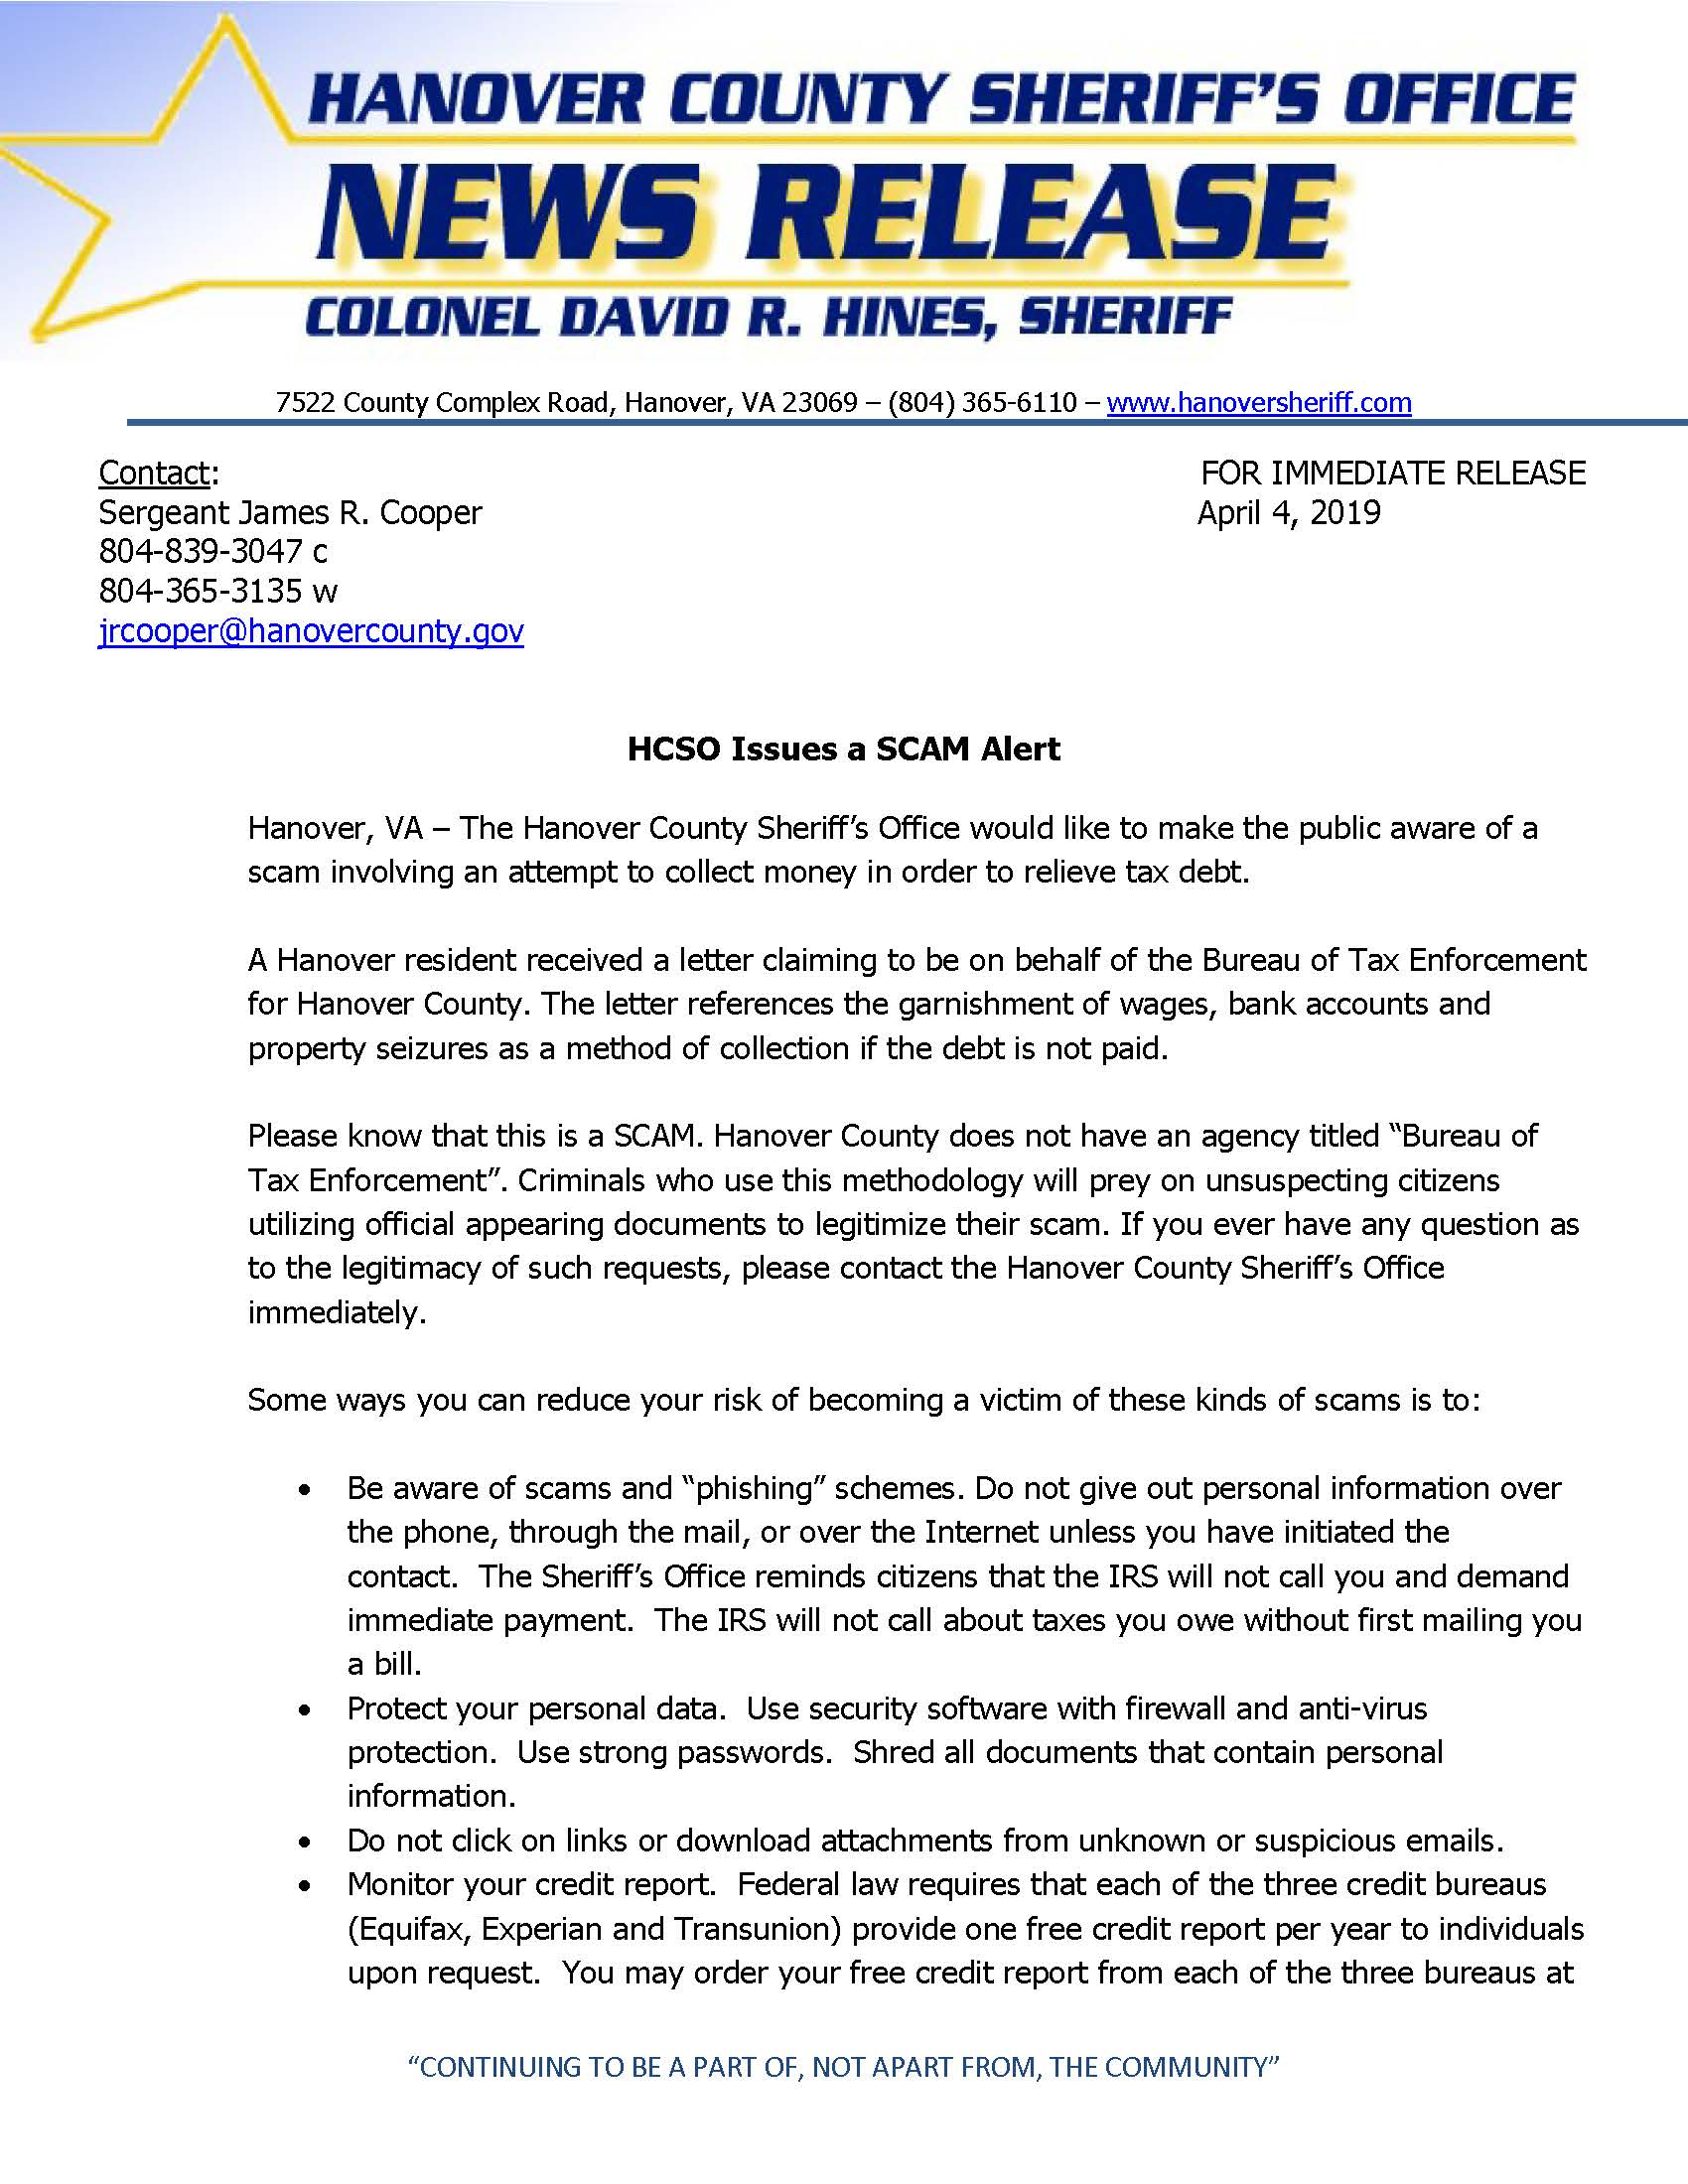 HCSO - HCSO Issues SCAM Alert- April 4 2018_Page_1